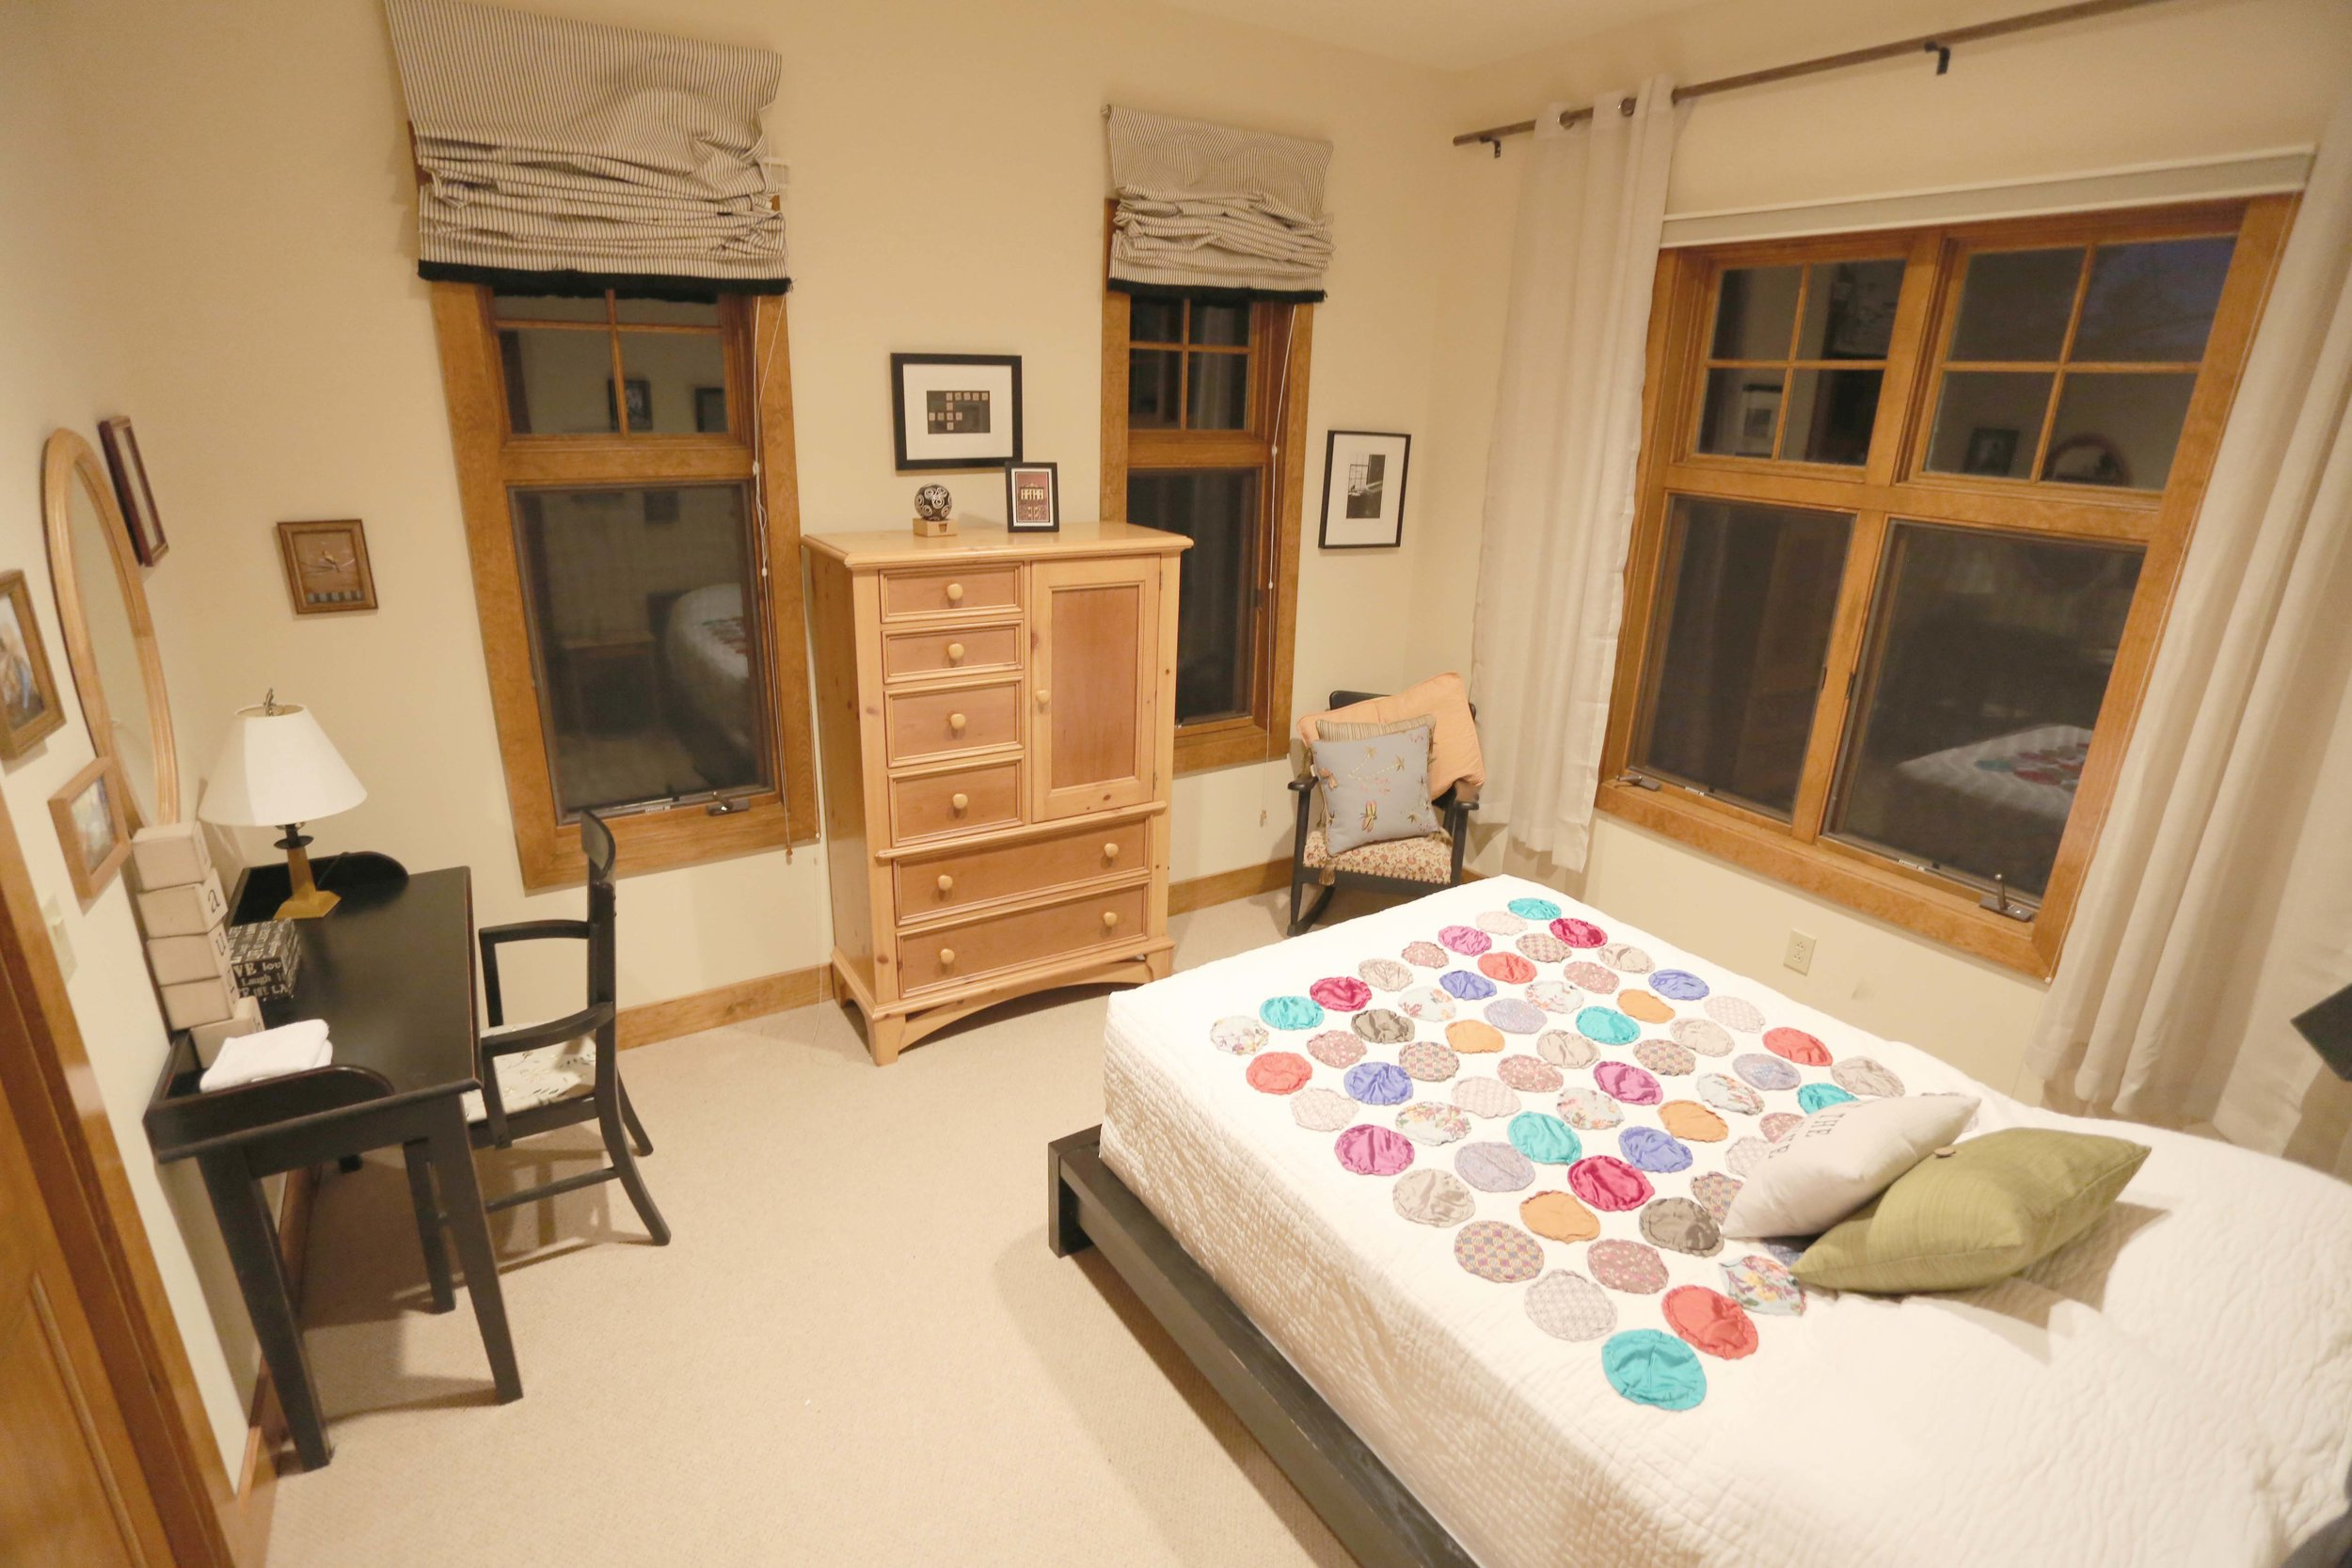 The Circle Lodge Love 'n Laugh Room has a Queen bed and full bathroom (Private on weekdays, shared on weekends). Horseshoes, bocci, shuffleboard, fishing pond on site. Organic produce straight from farm steps away.